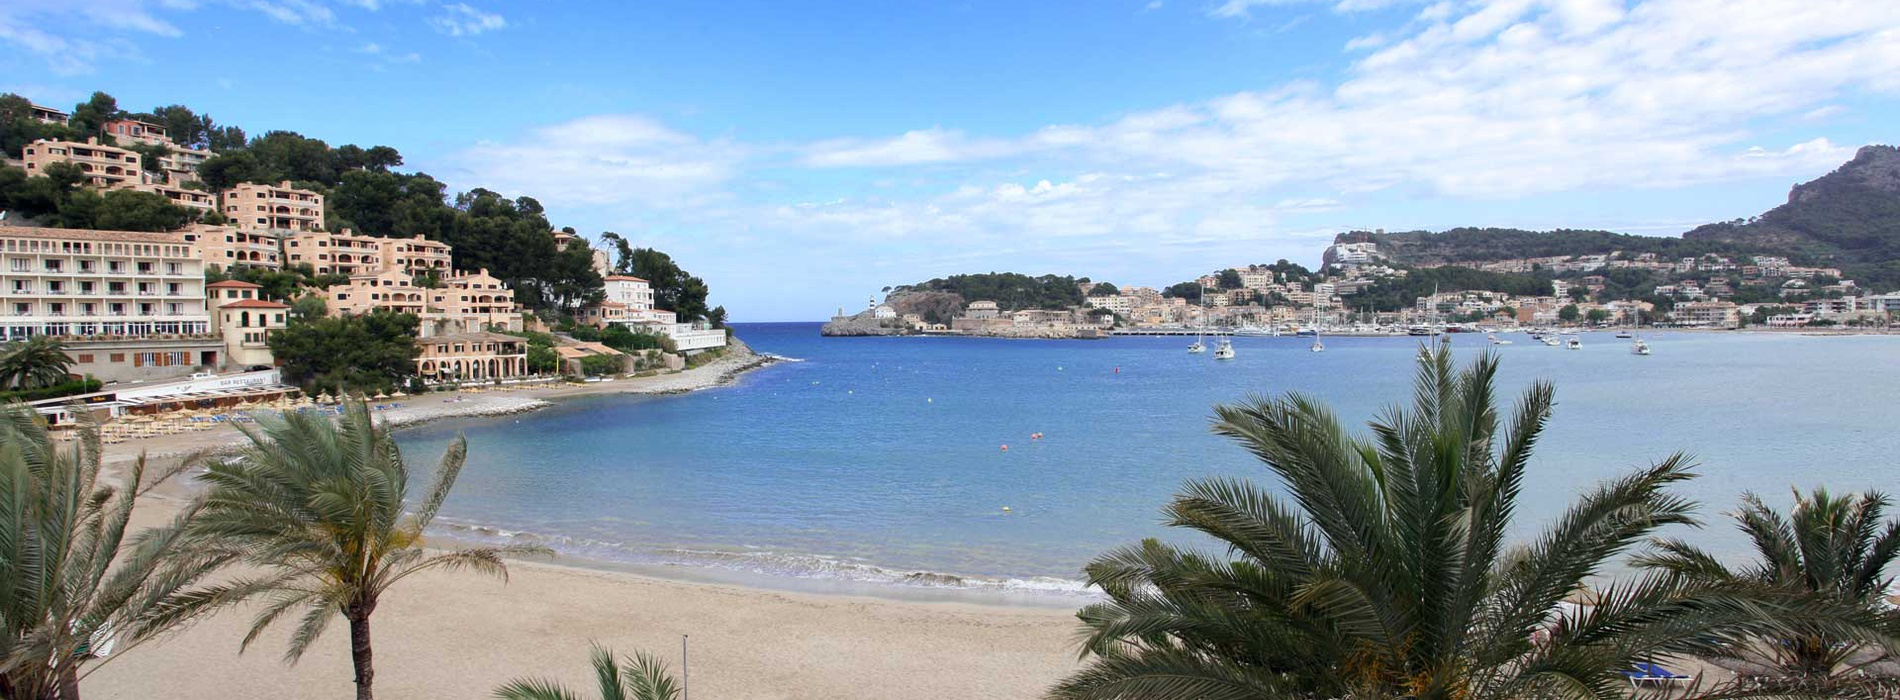 Views of the Port of Soller